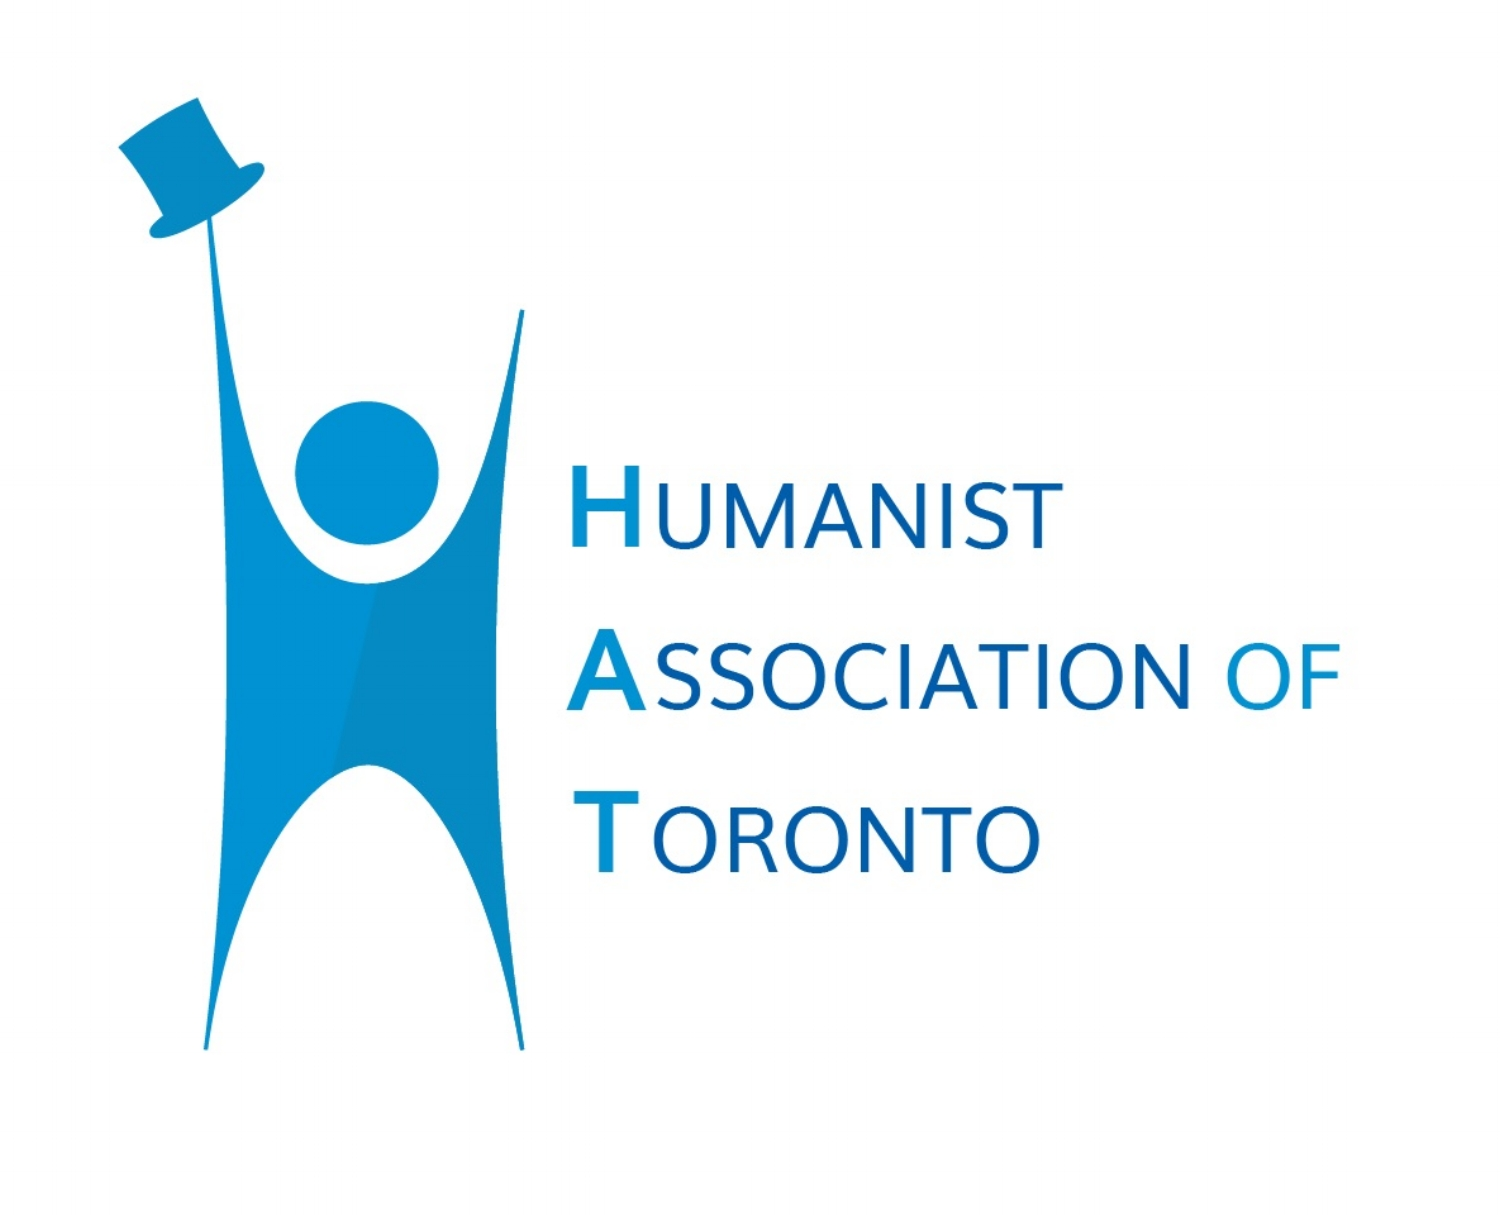 Humanist Association of Toronto